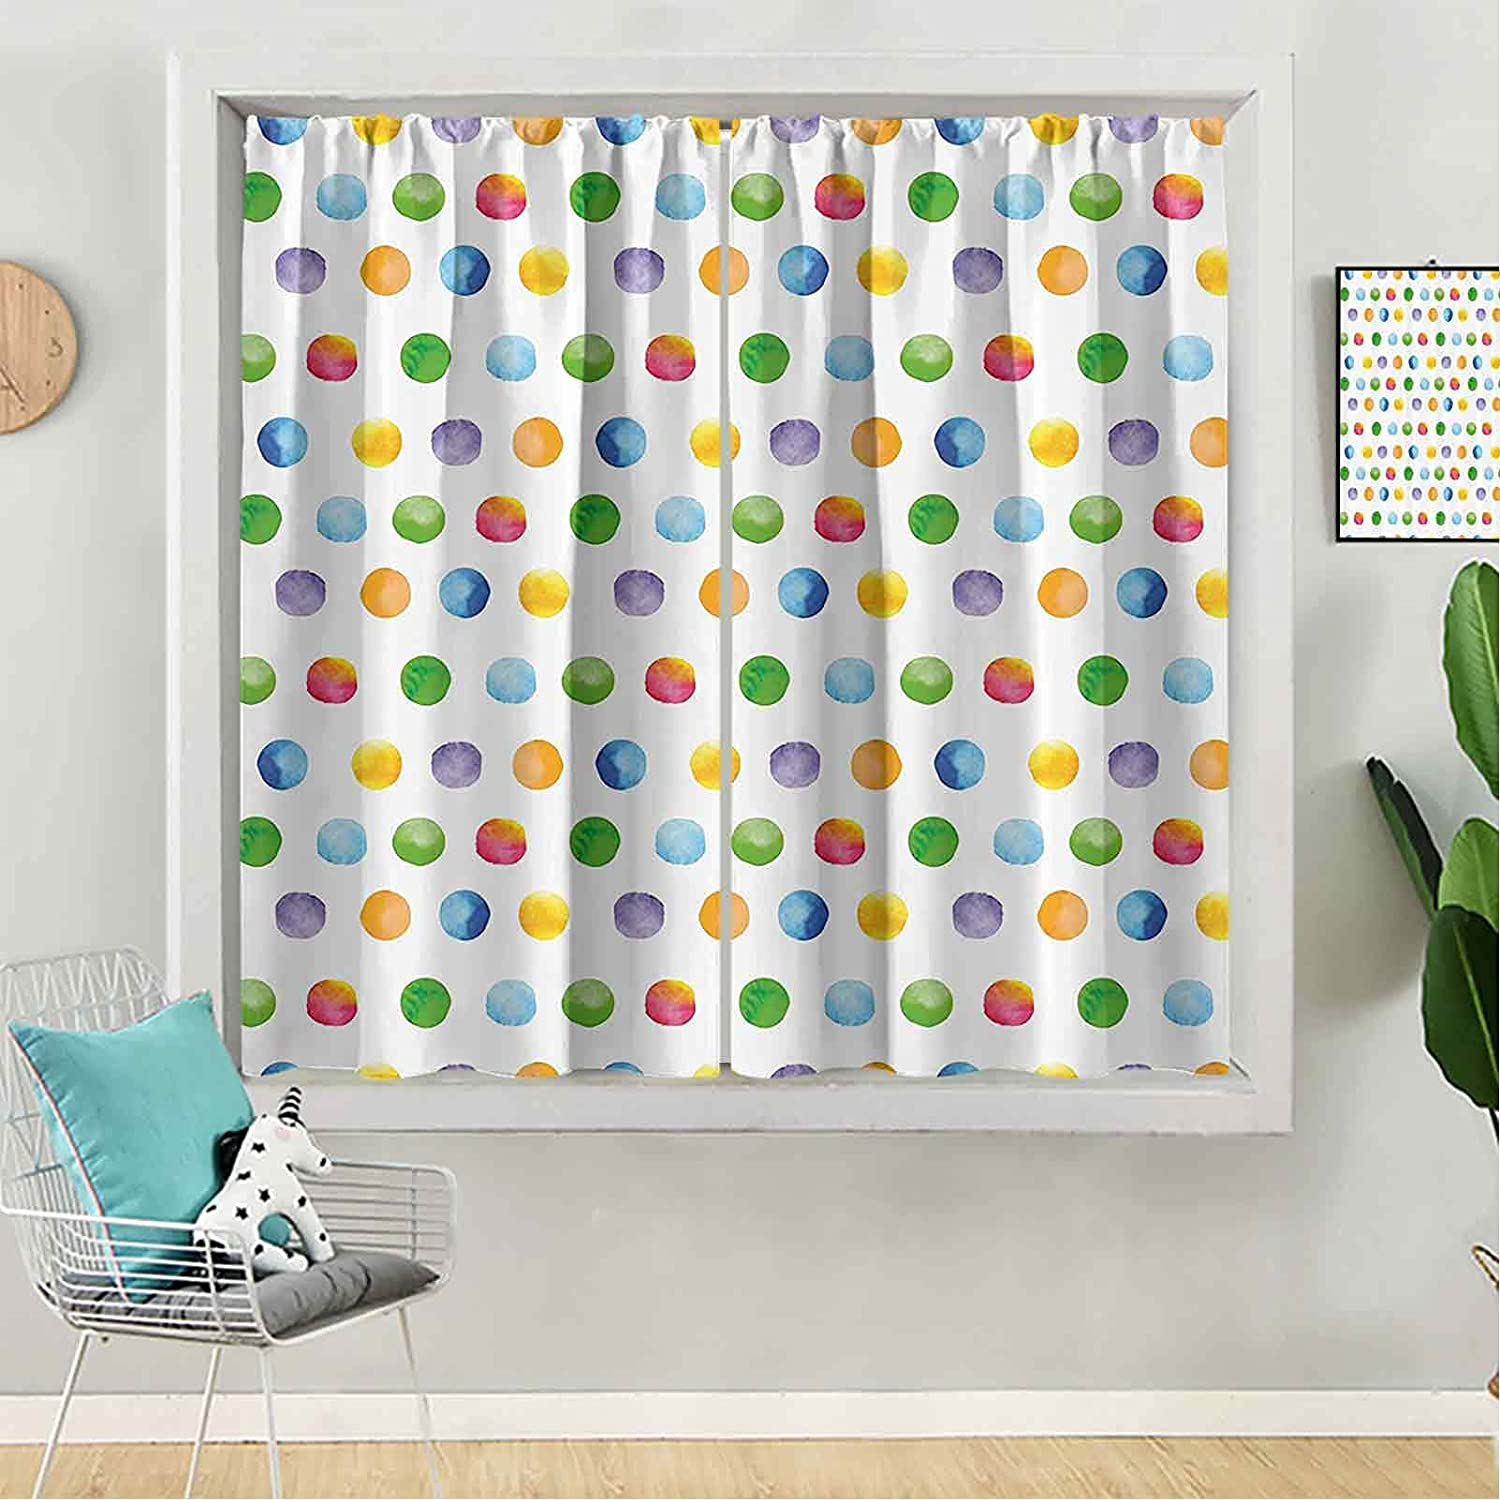 Nashville-Davidson Mall Blackout Curtain Year-end gift 63 inches Long for Panel Kids Window B